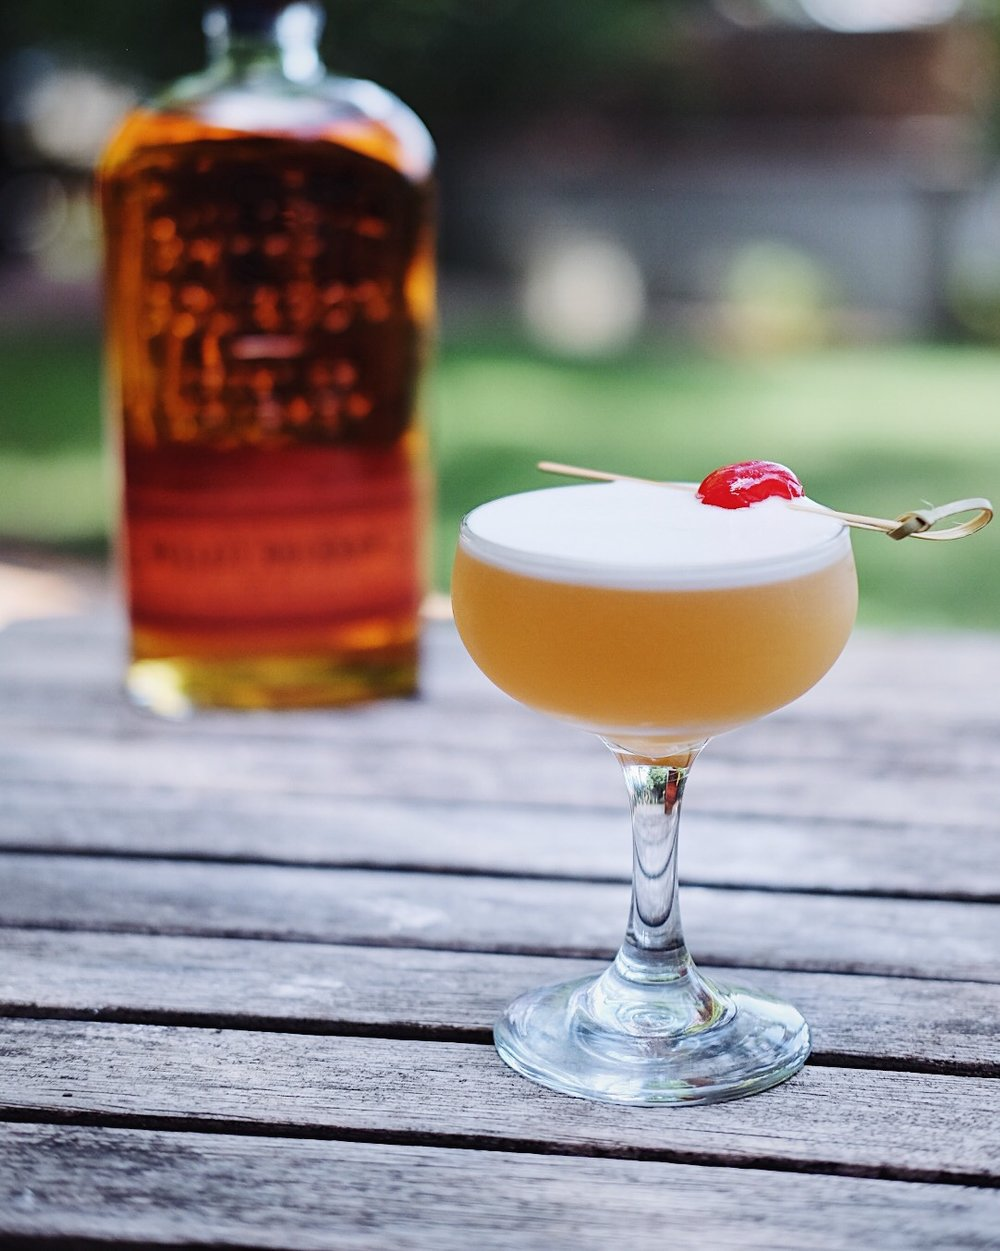 ingredients: - 2 oz bourbon or rye3/4 oz fresh lemon juice3/4 oz simple syrupEgg whiteGarnish: cherry